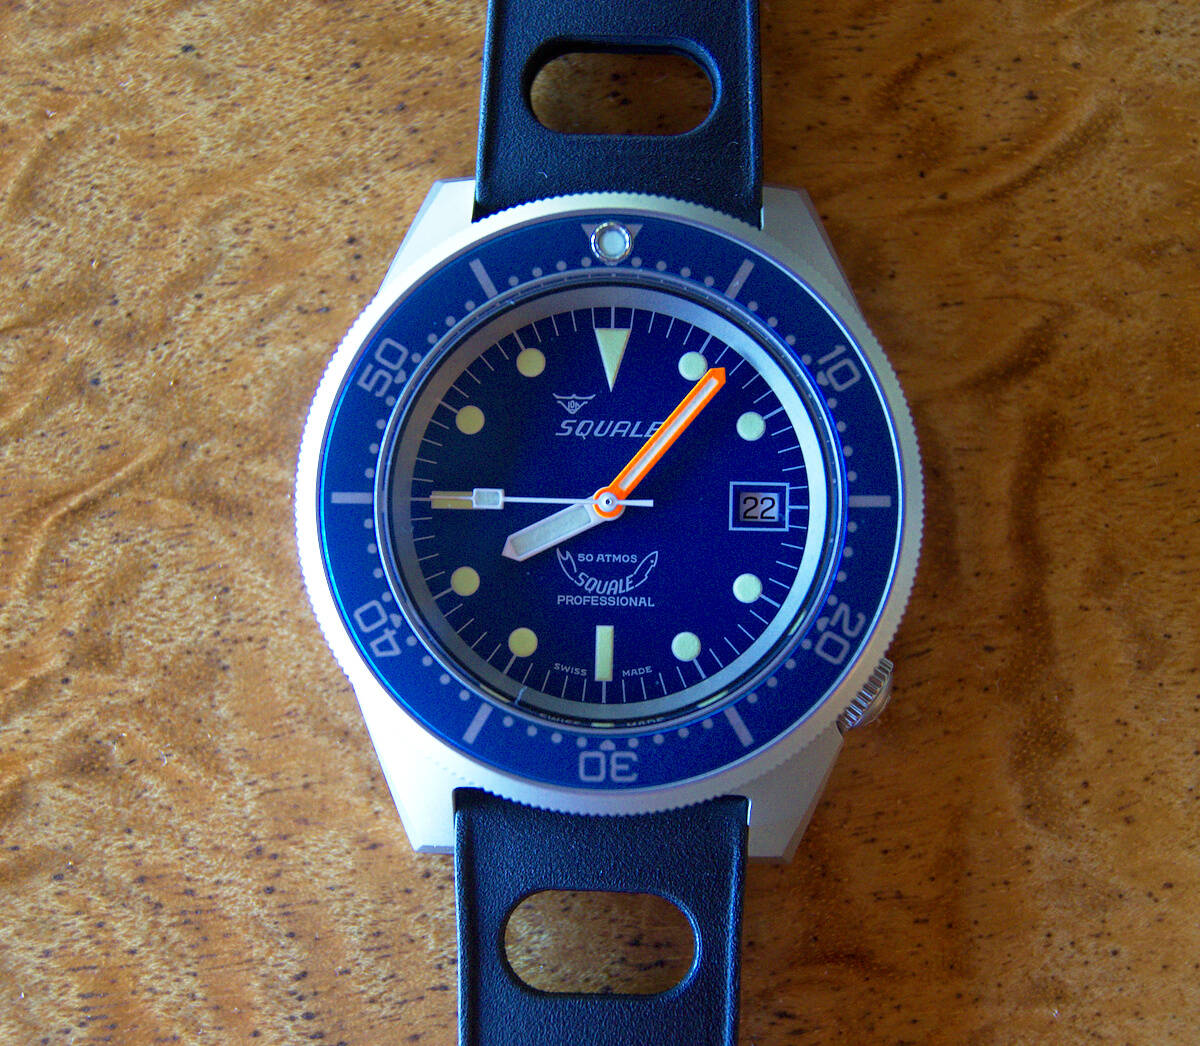 Squale 50 atmos 1521 Dive Watch - Blue Blasted